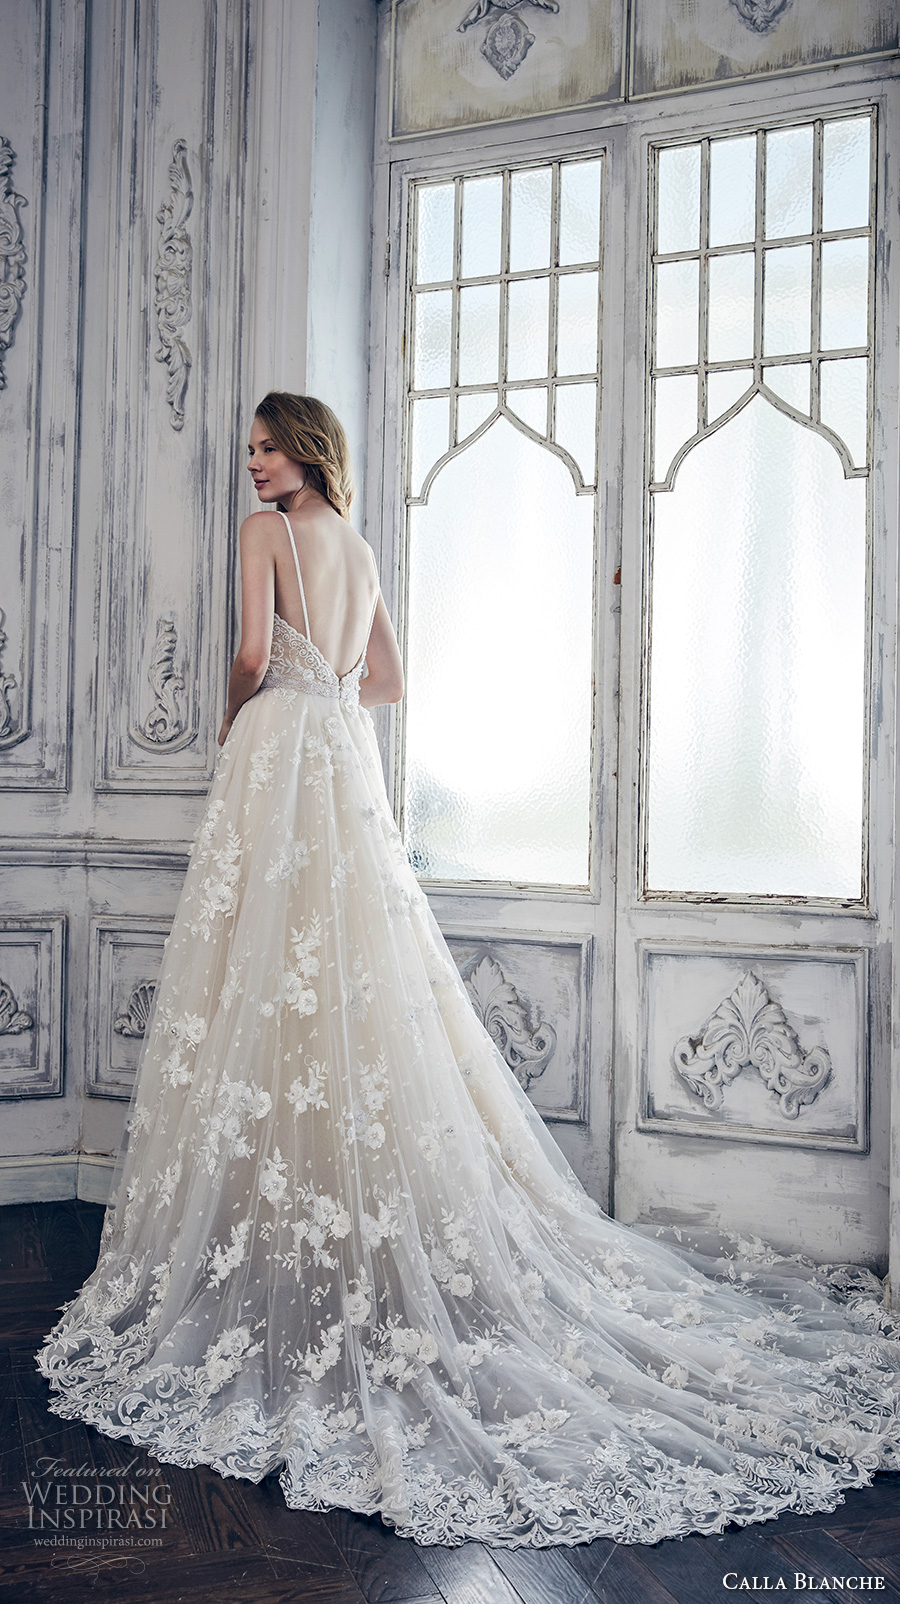 calla blanche spring 2017 bridal sleeveless spagetti strap deep plunging sweetheart neckline heavily embroidered bodice romantic a line wedding dress open low back chapel train (17128) bv